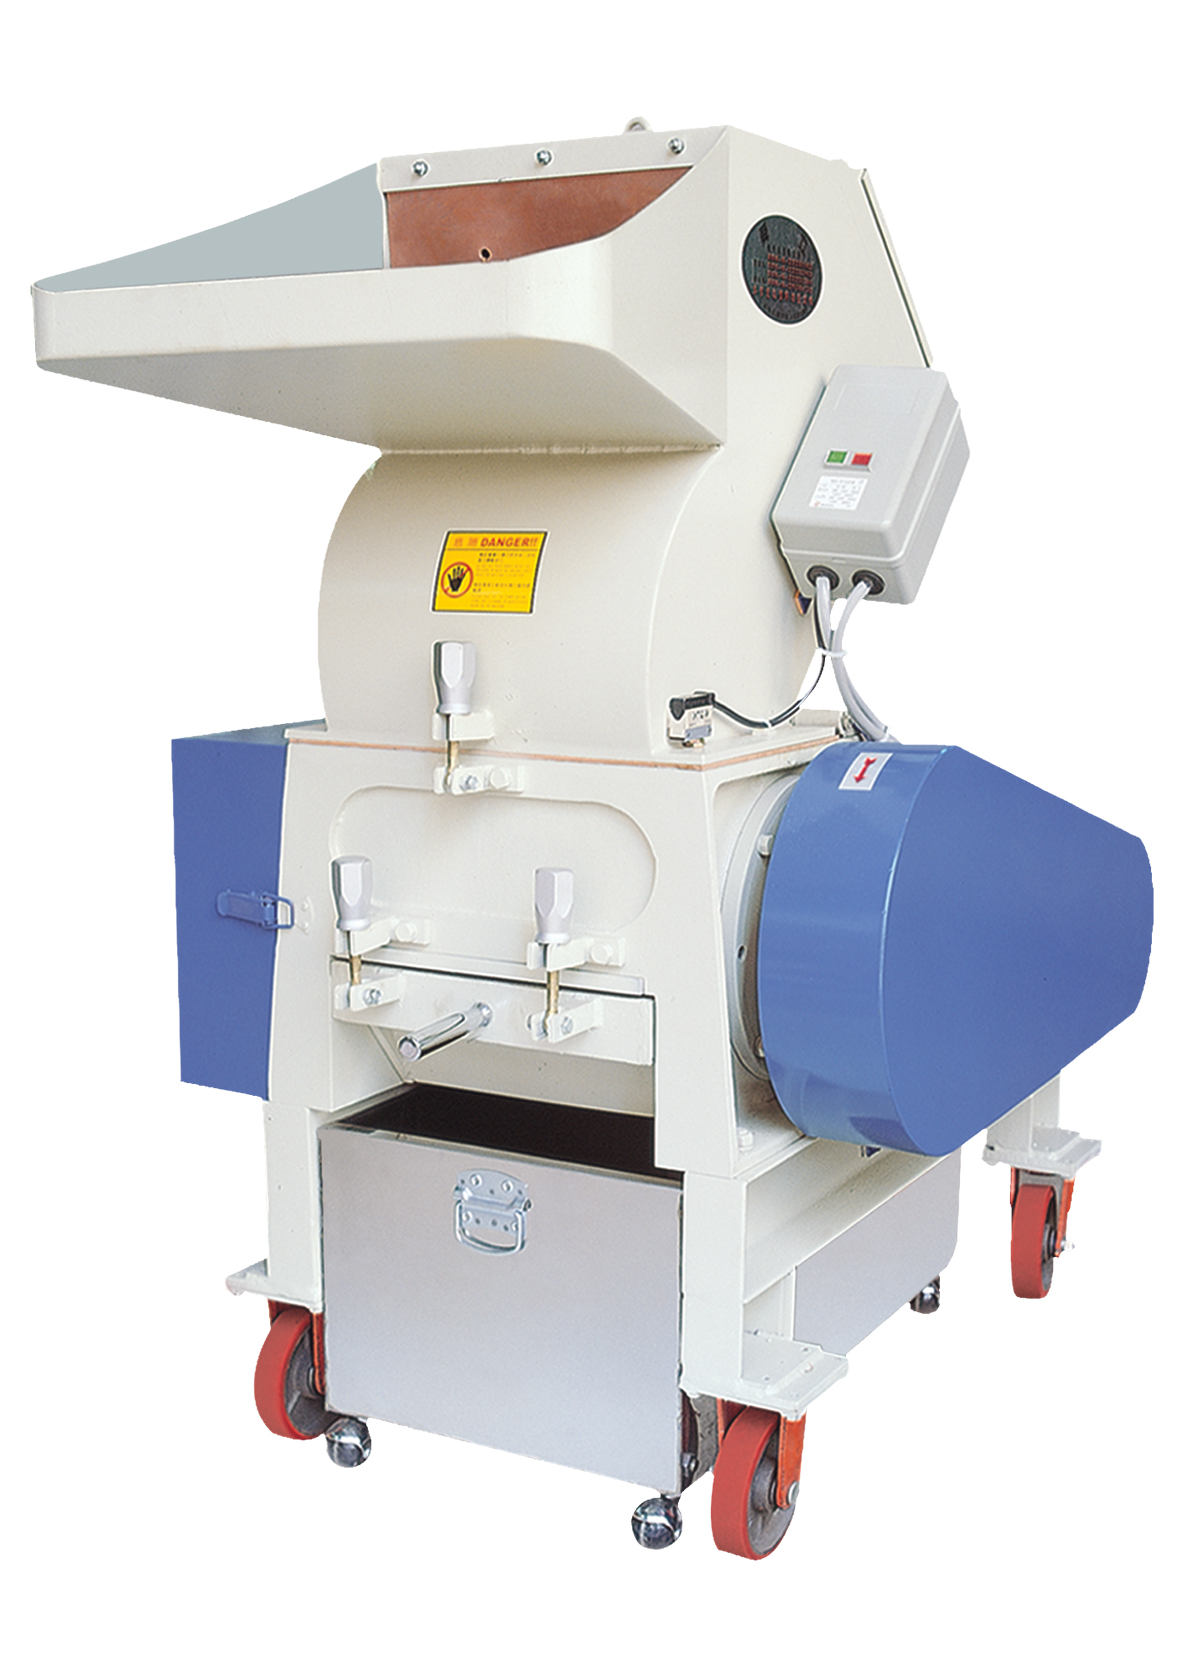 Plastic-Crusher-Small-Type-7.5HP-to-15HP